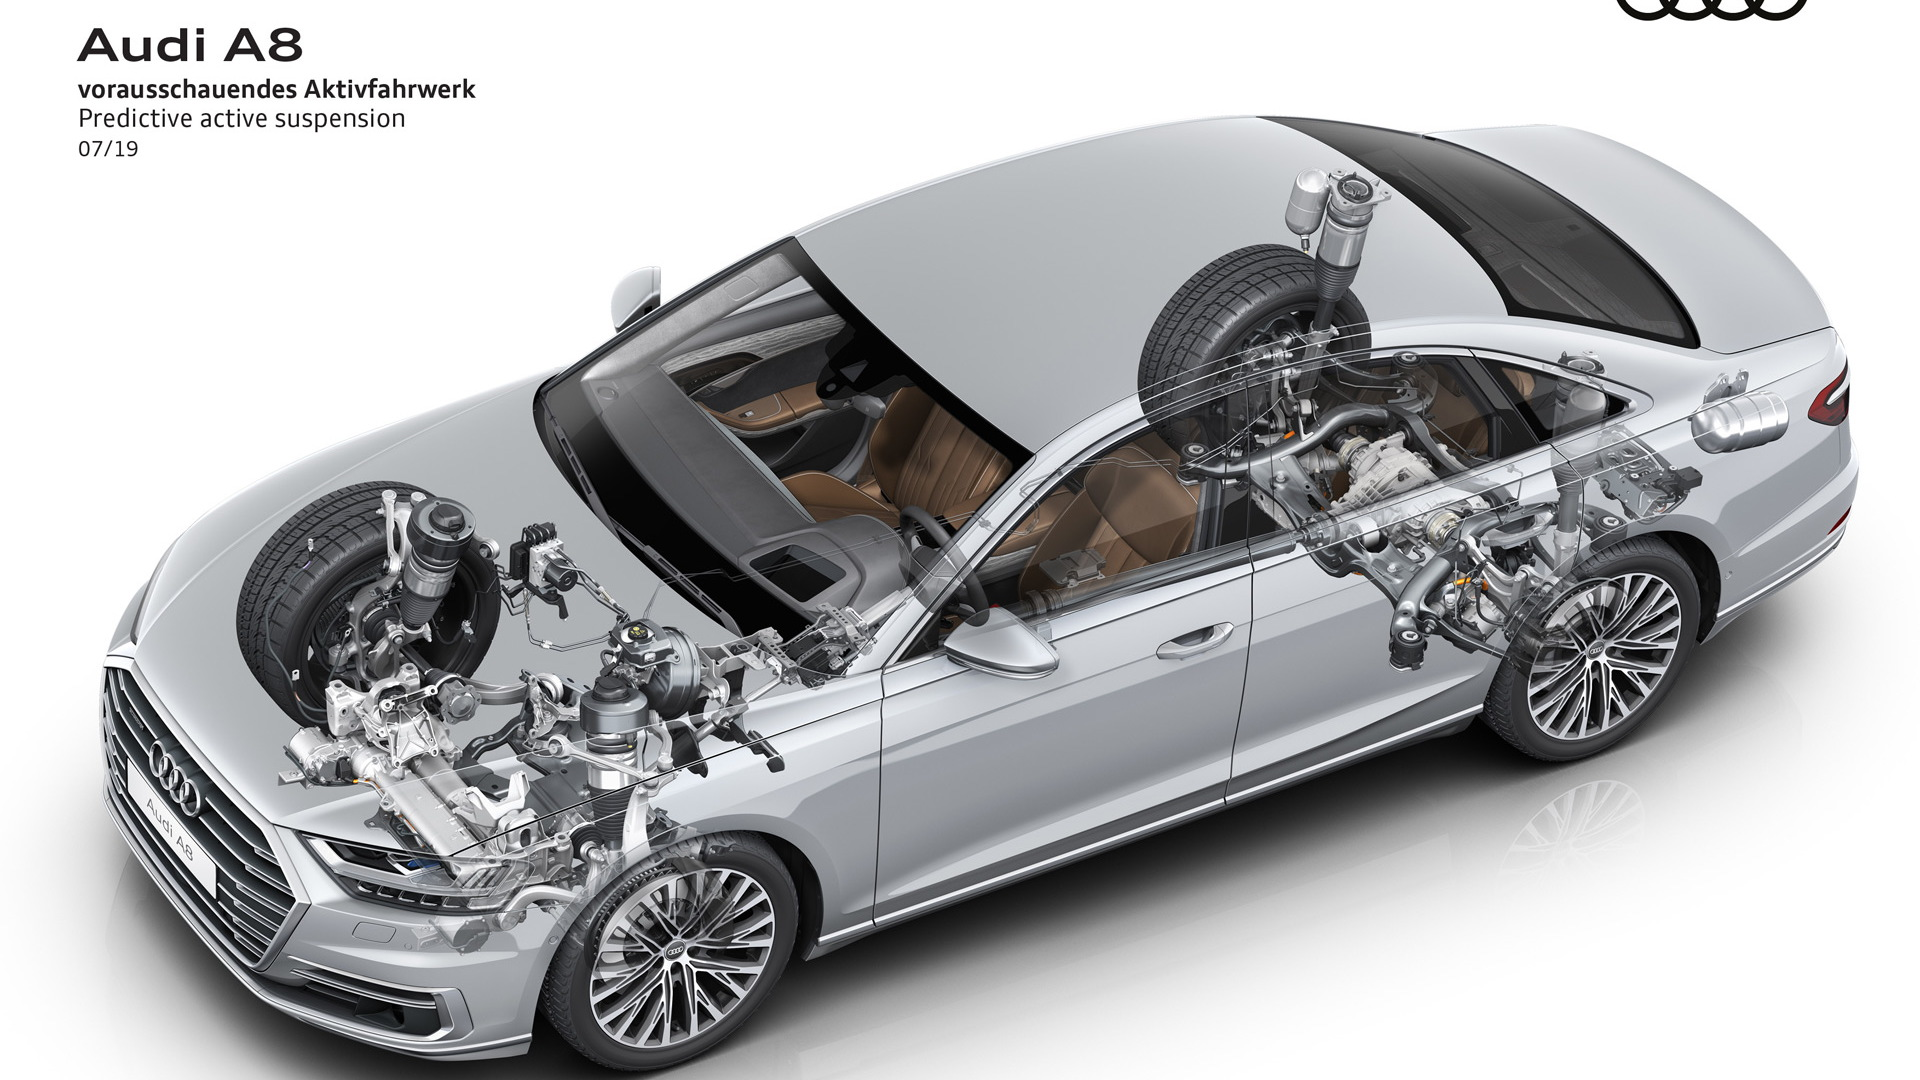 2020 Audi A8's predictive active suspension